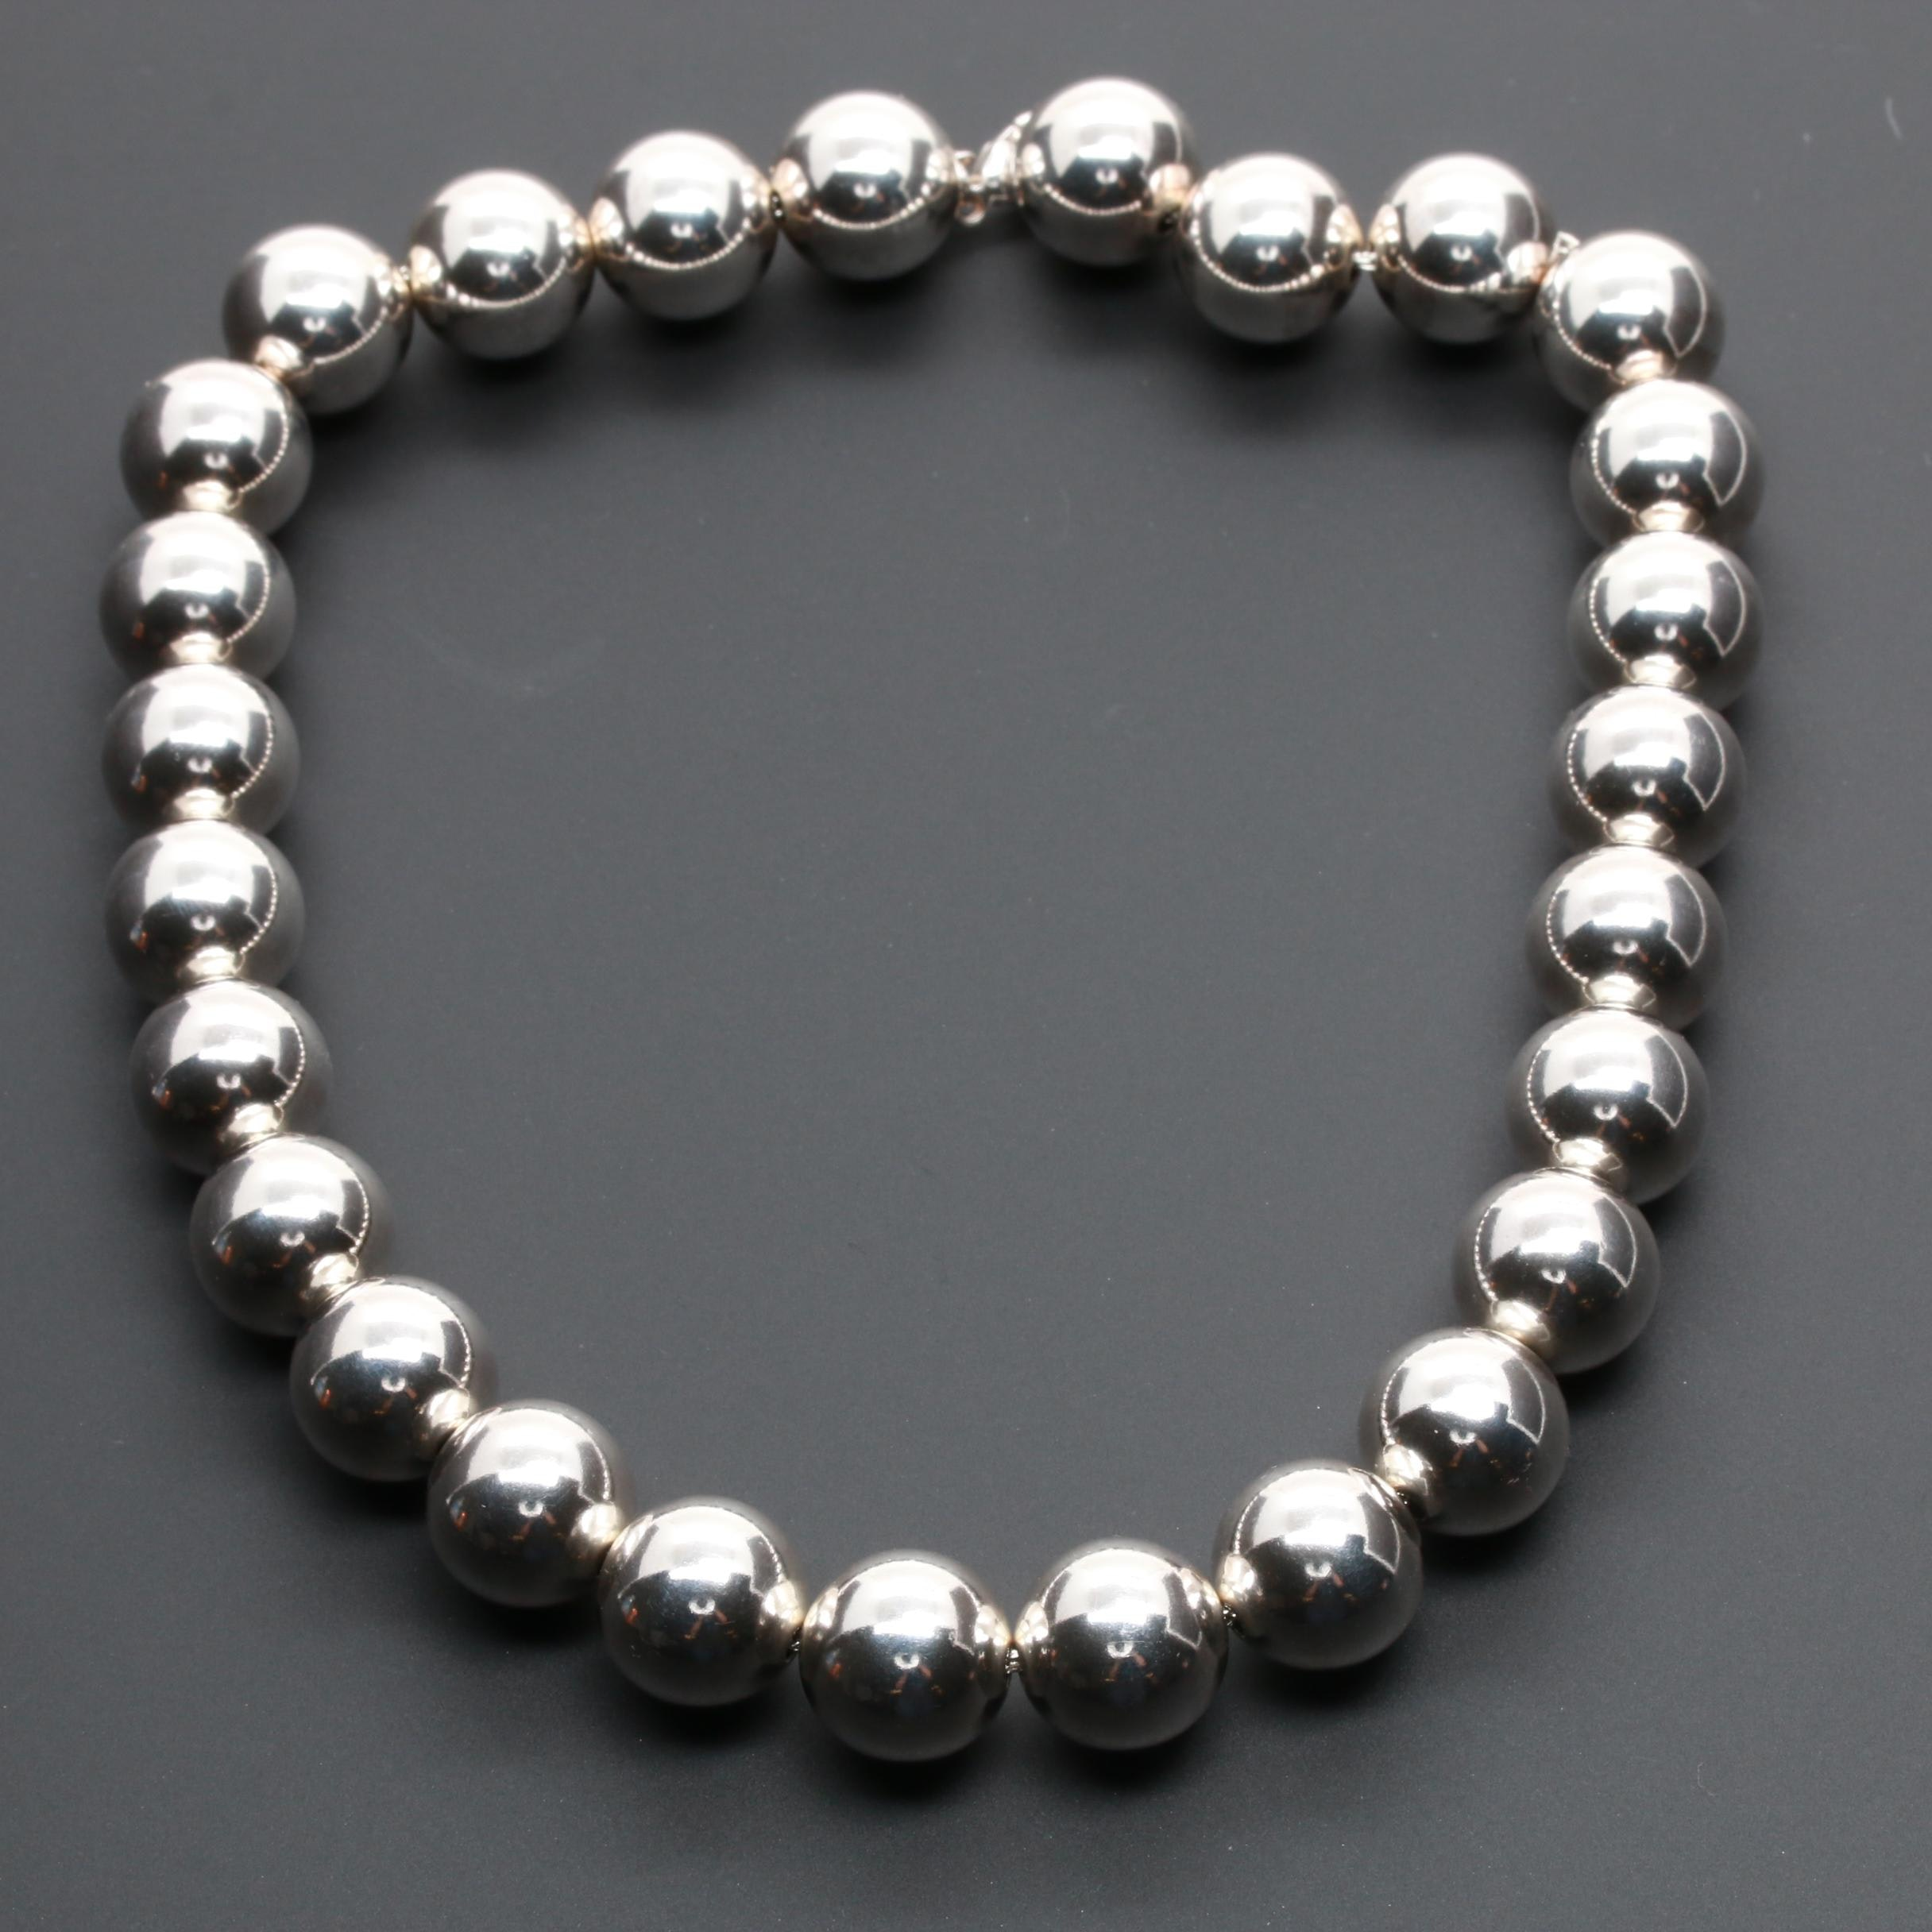 Tiffany & Co. Sterling Silver Round Beaded Necklace